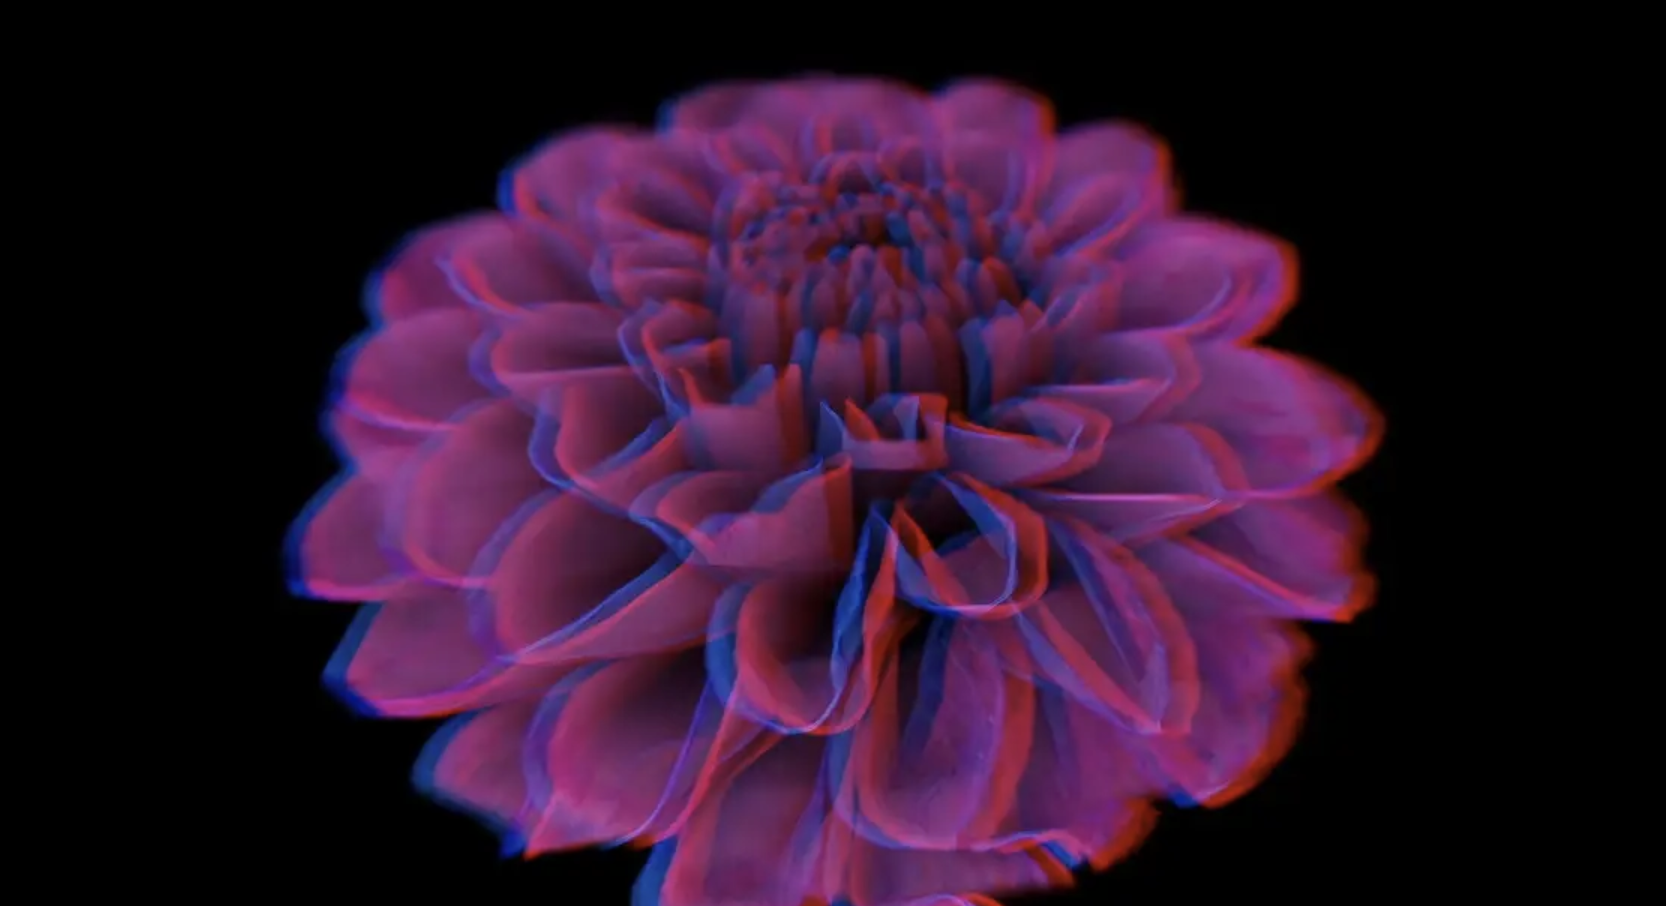 Erica Seccombe, BIG PINK, 2019, 3 min (looped), Single channel anaglyph 3D movie, to be viewed with red/cyan glasses. This work was created for the exhibition BIG PINK, 2019, Galerie Pompom.